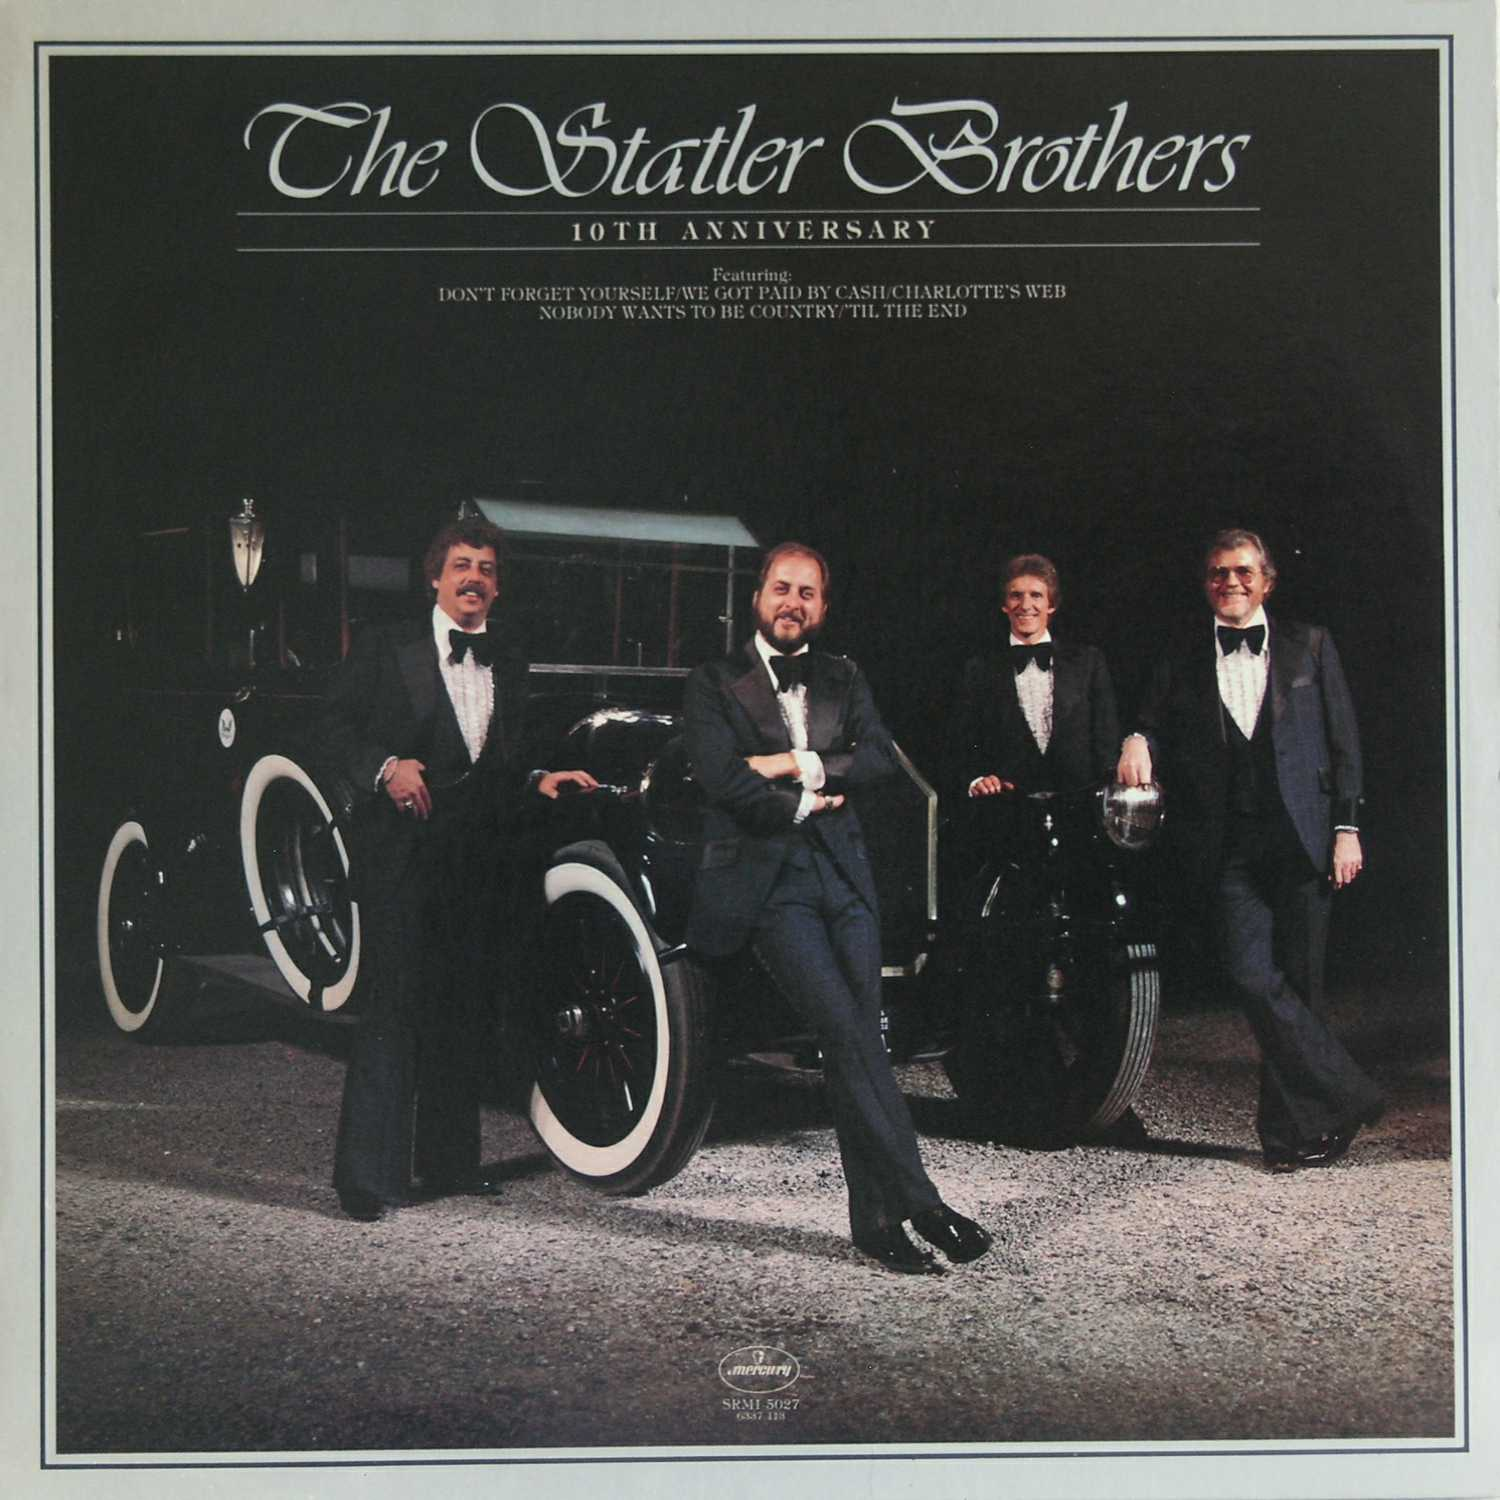 The Statler Brothers - Tenth Anniversary (Country Music vinyl record for sale)